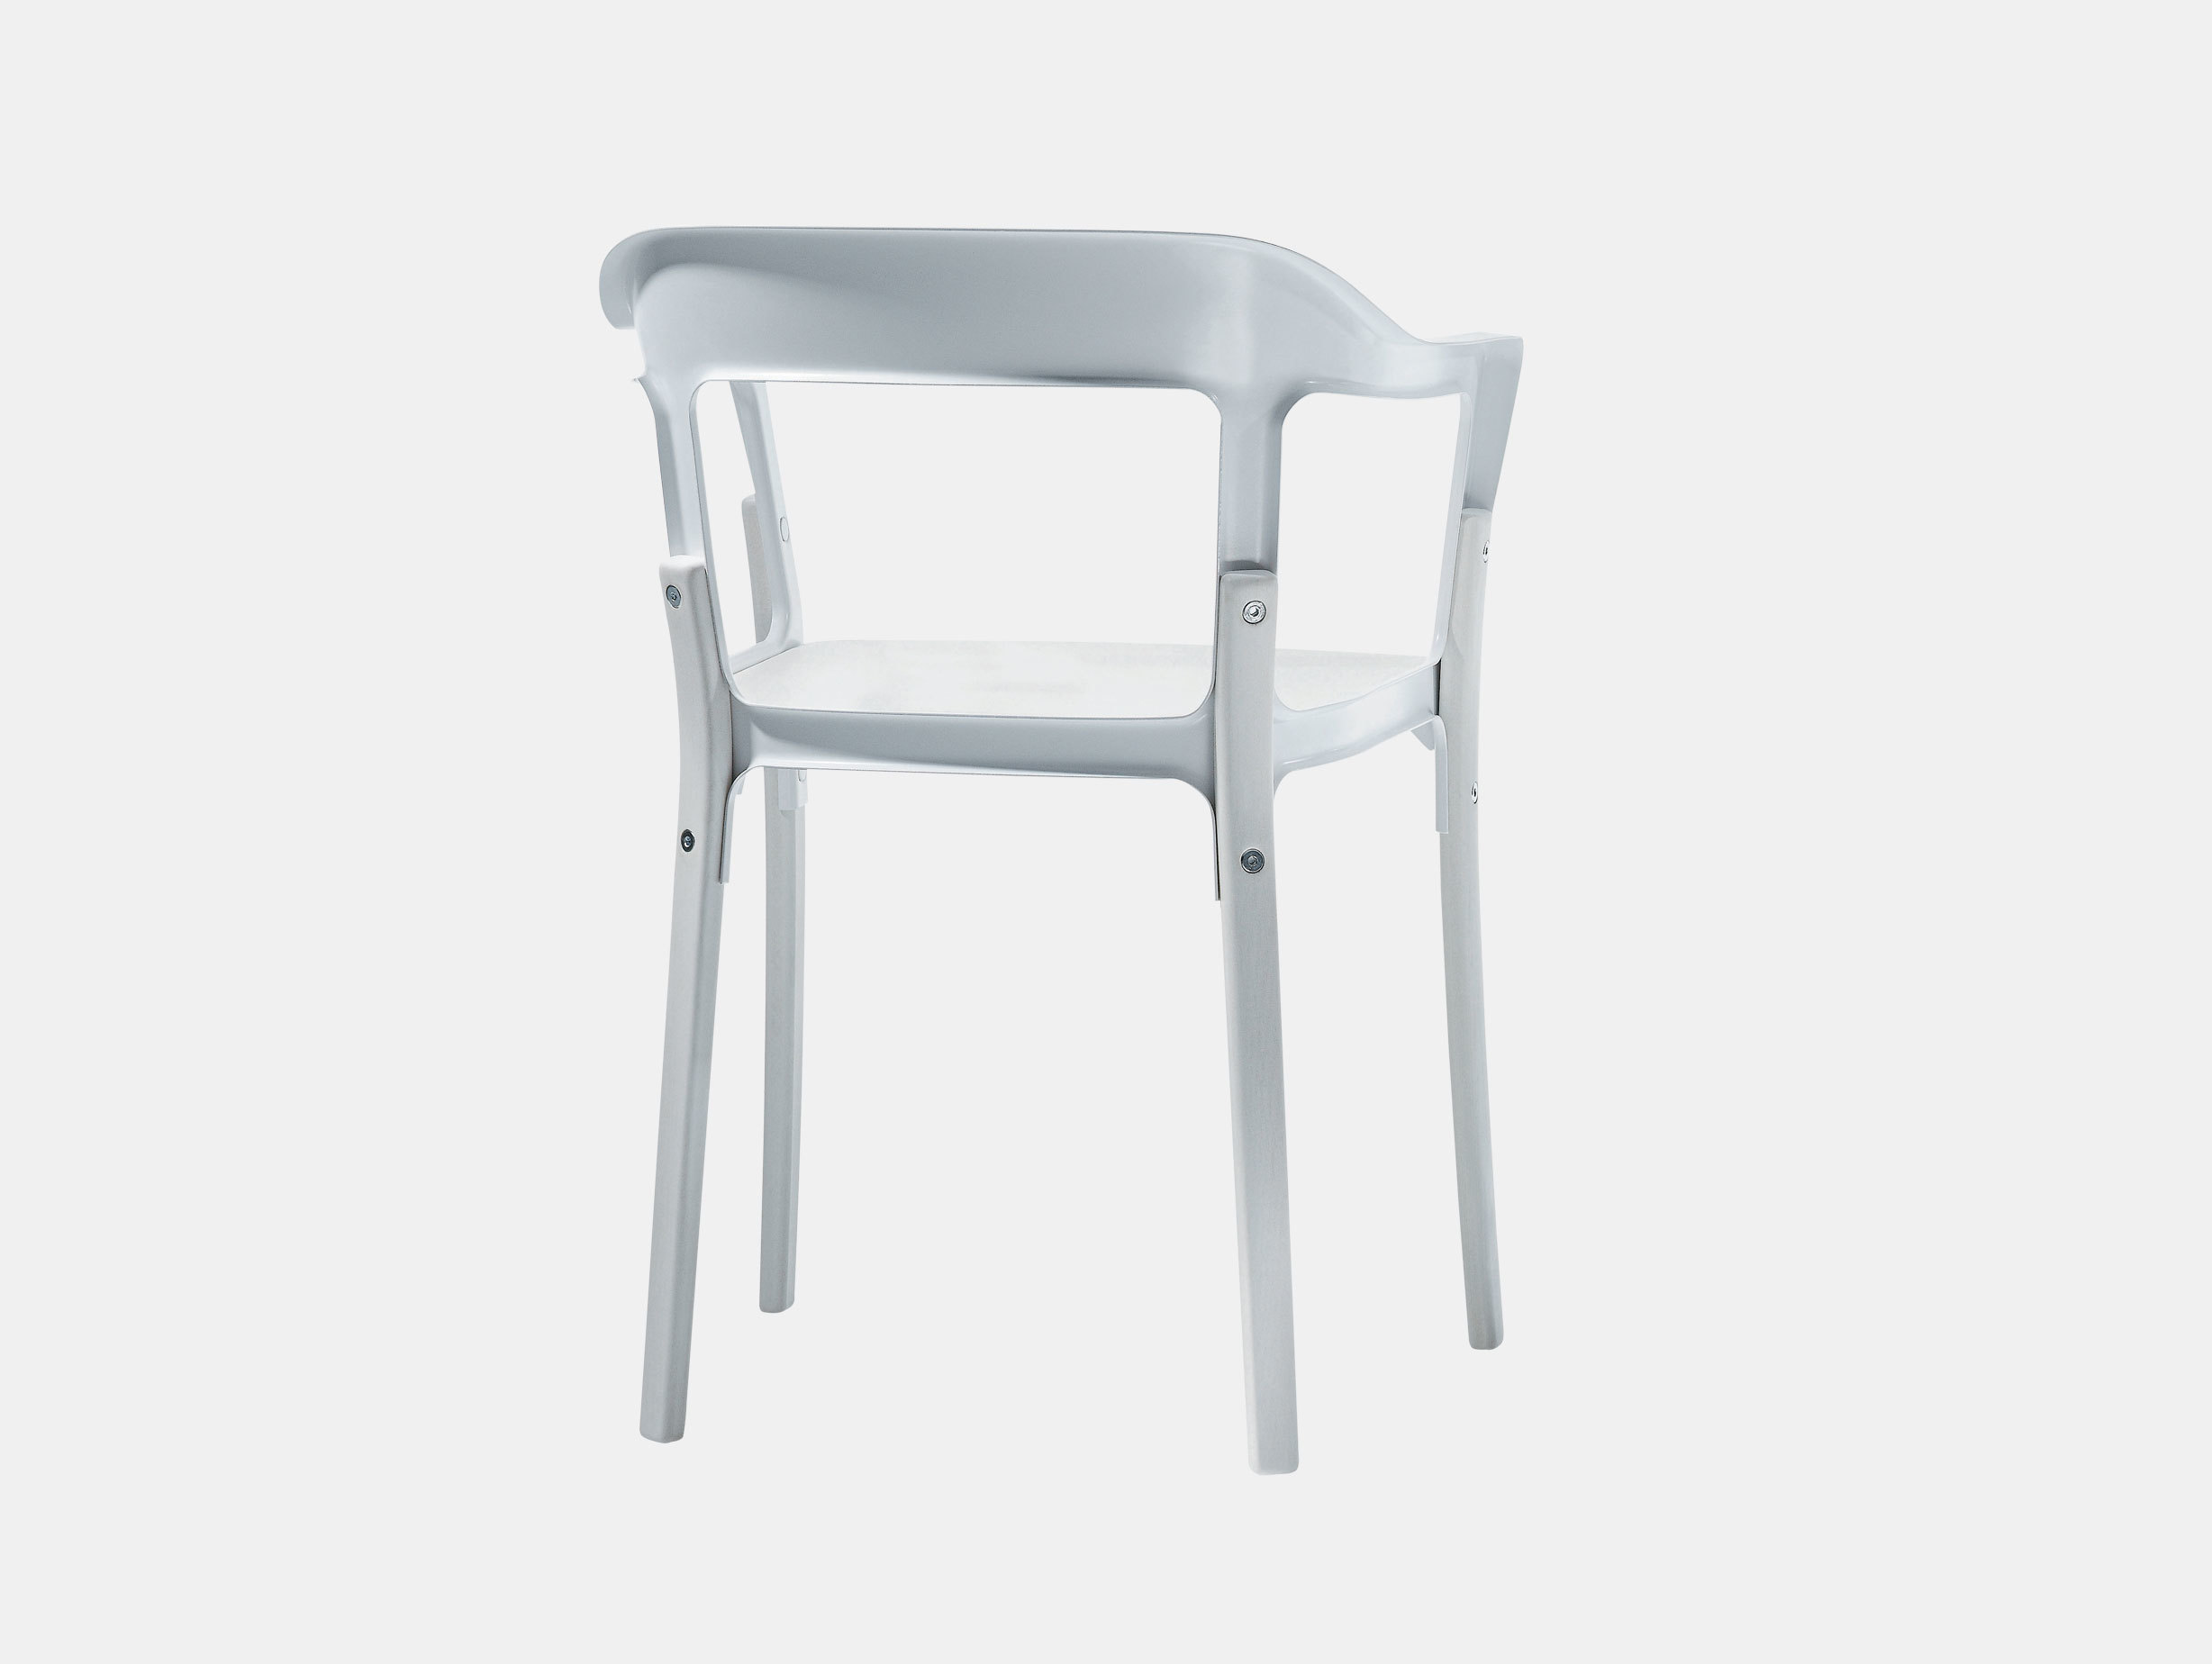 Steelwood Chair image 1